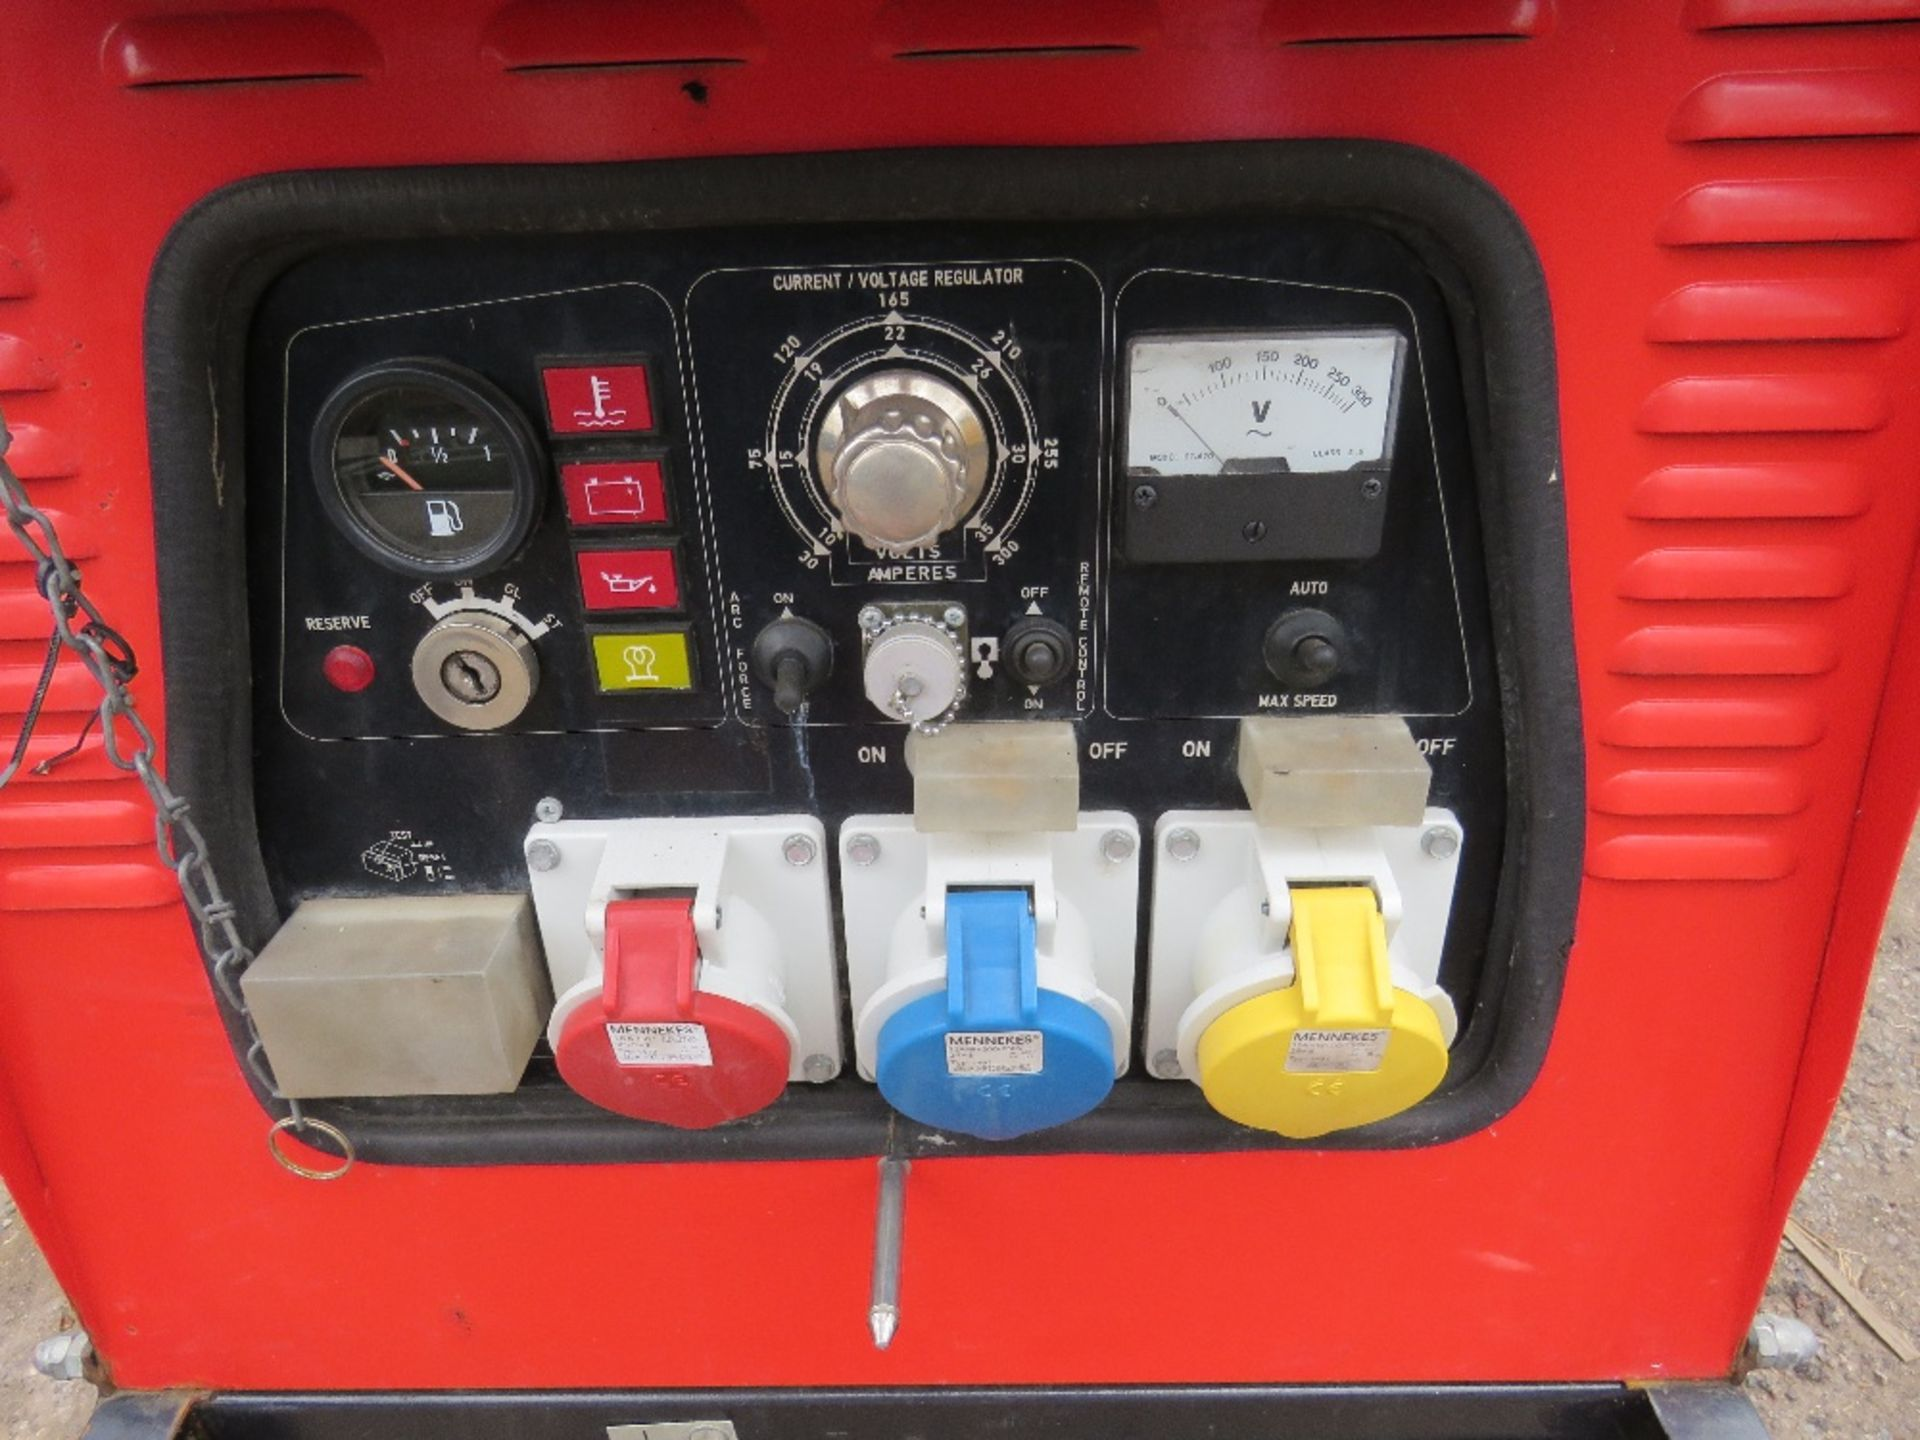 Lot 44 - GENSET MPM 8/300 AMP WELDER GENERATOR. WHEN TESTED WAS SEEN TO TURN OVER BUT NOT START